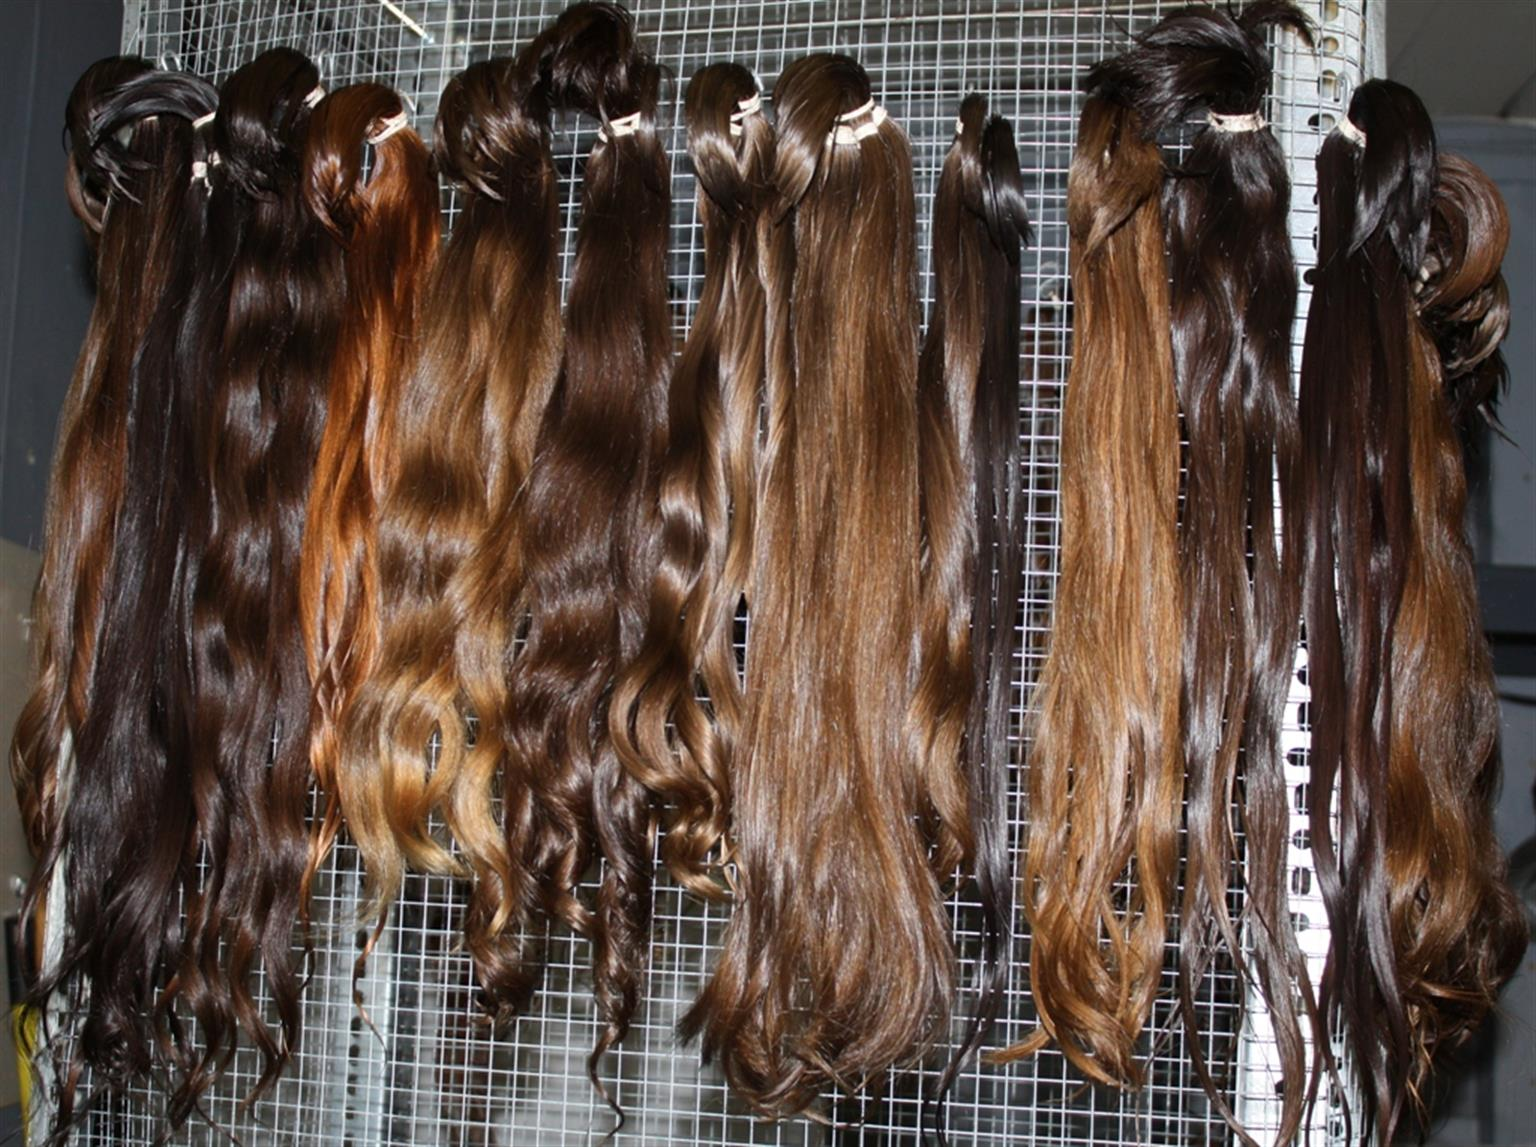 What You Need To Know About The Russian Hair Extensions Suppliers